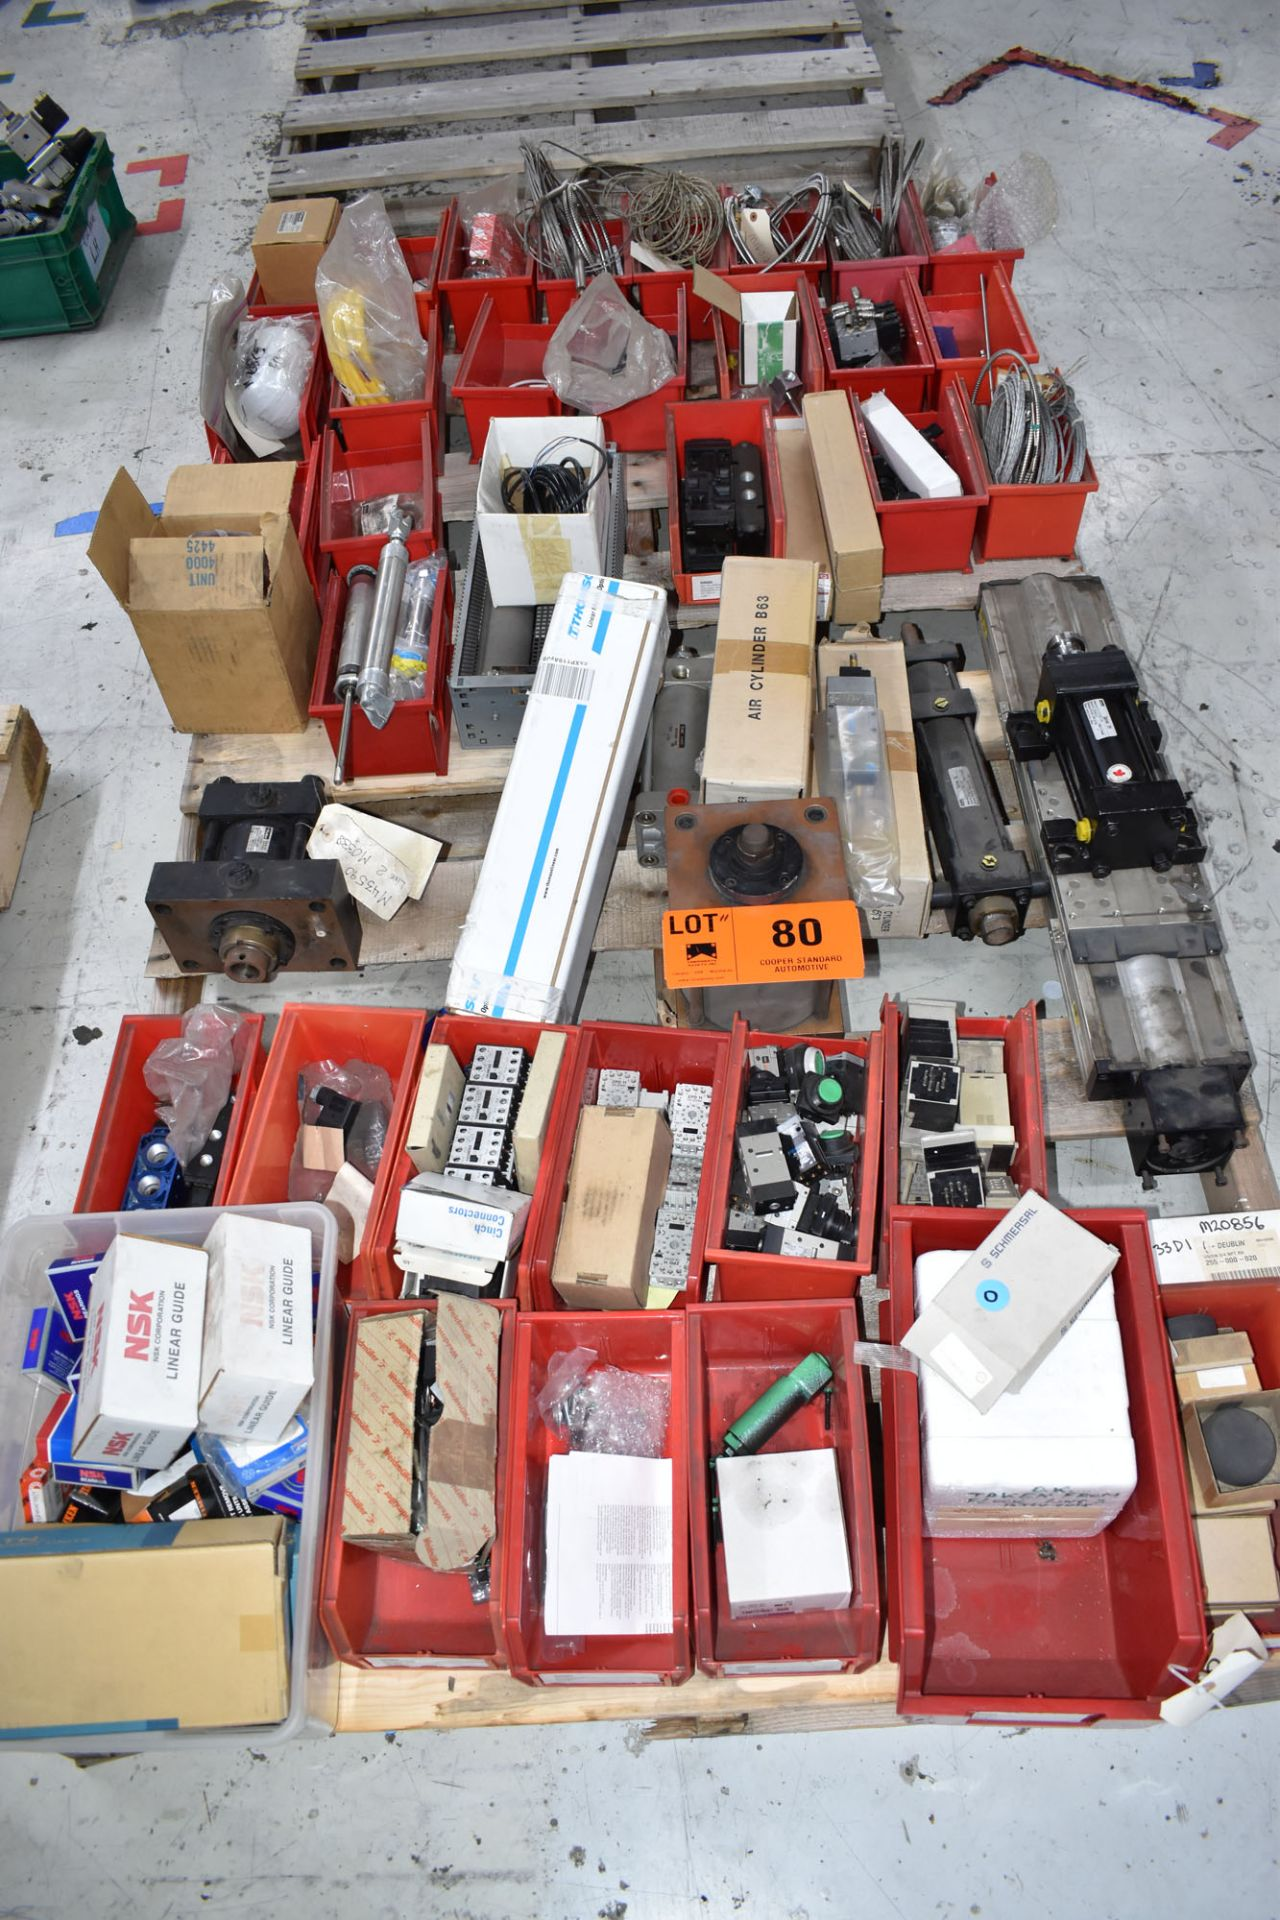 LOT/ PALLET WITH CONTENTS CONSISTING OF BEARINGS, CYLINDERS, AND EXTRUDER LINE COMPONENTS